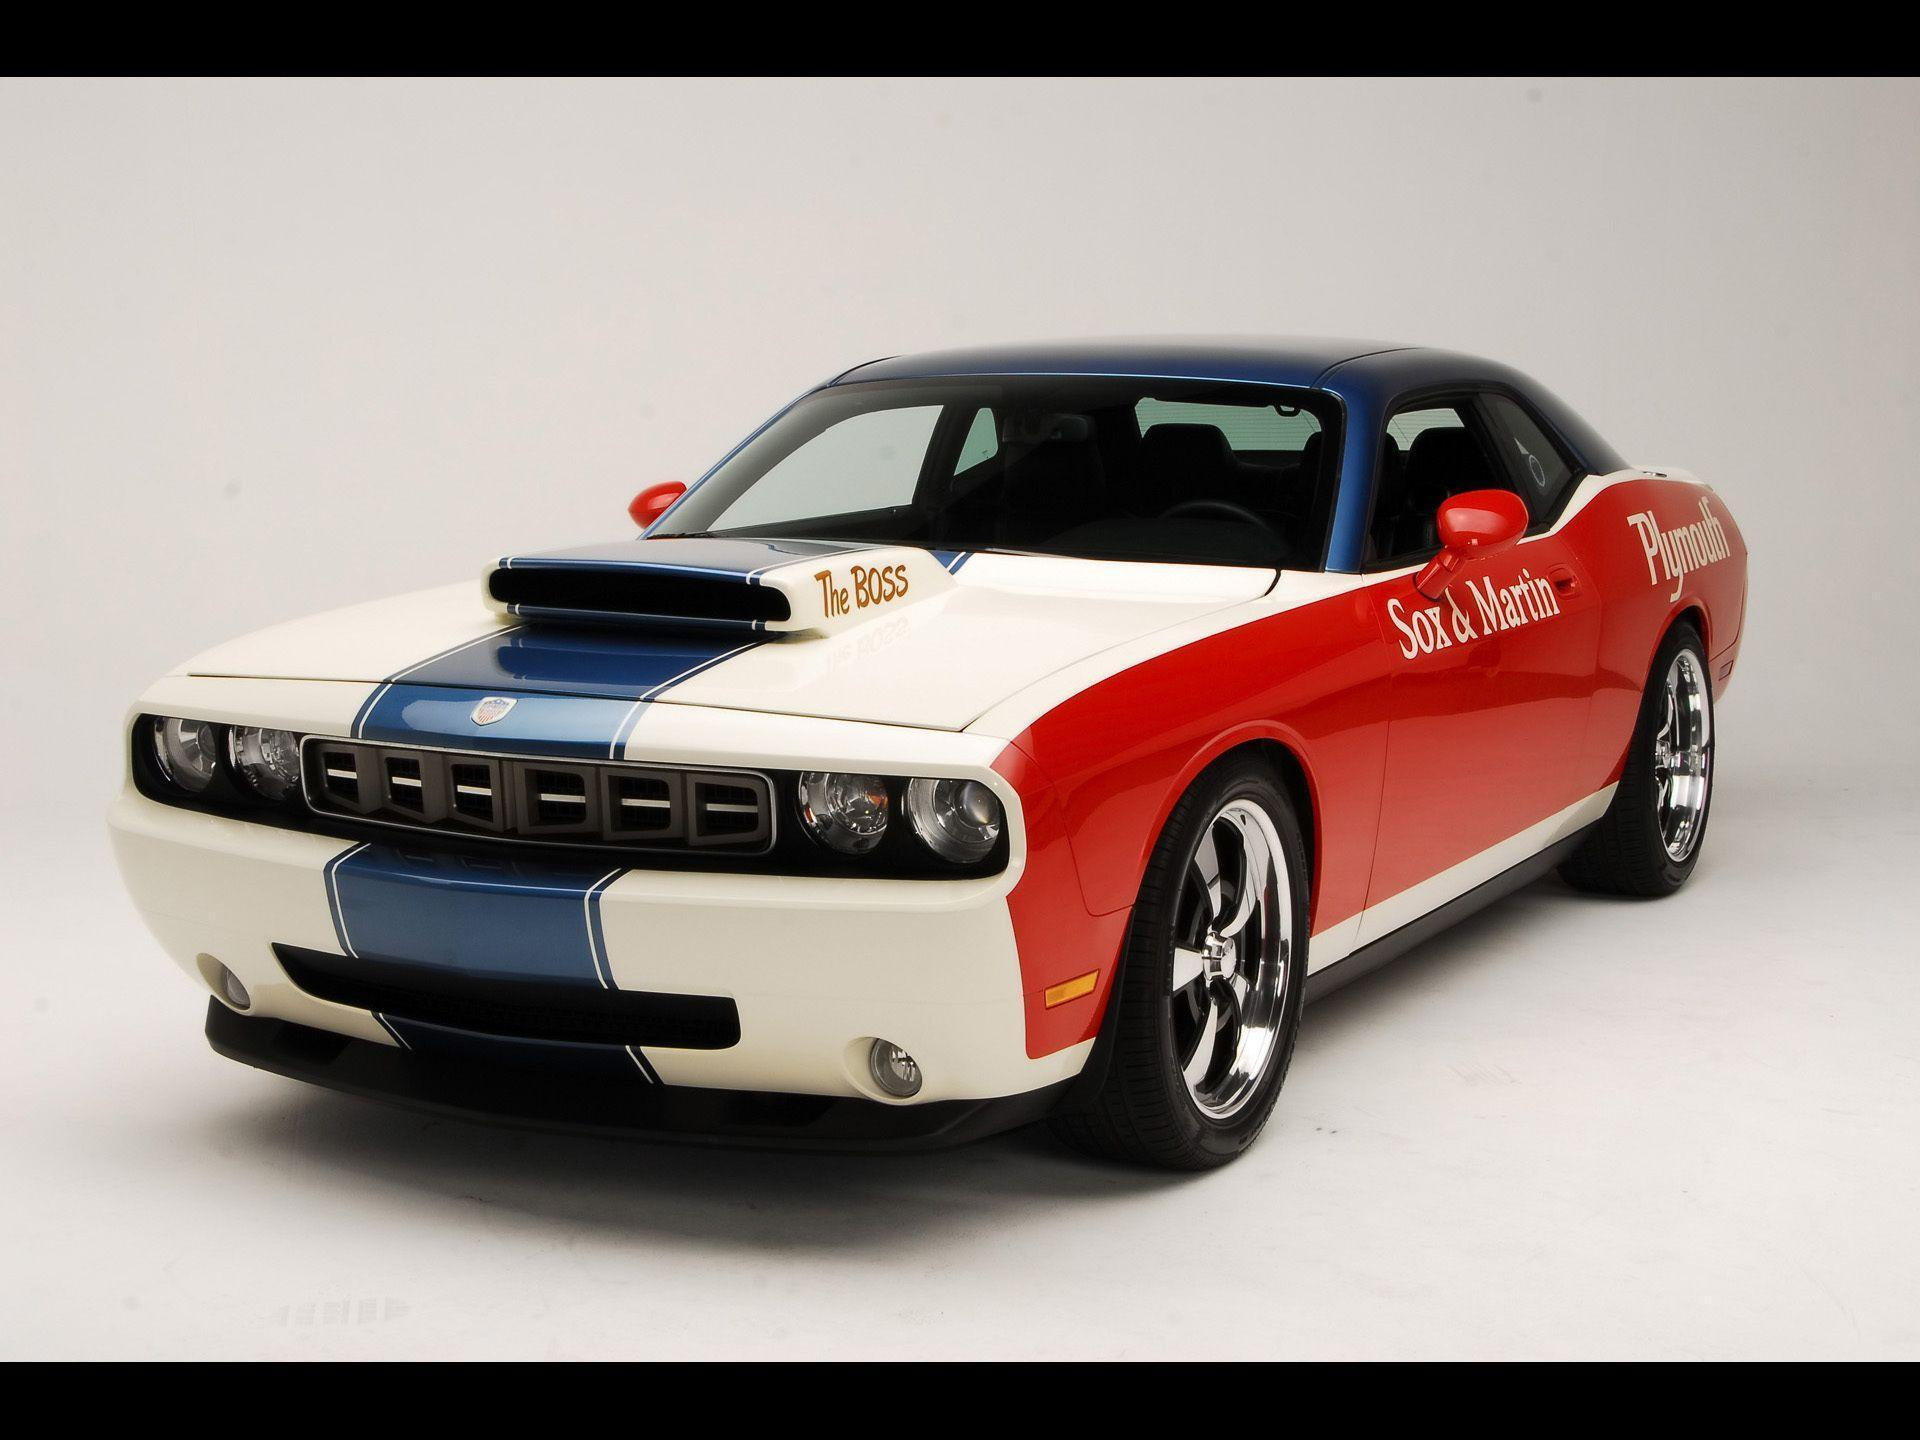 Cool Muscle Car Wallpapers 1920x1440